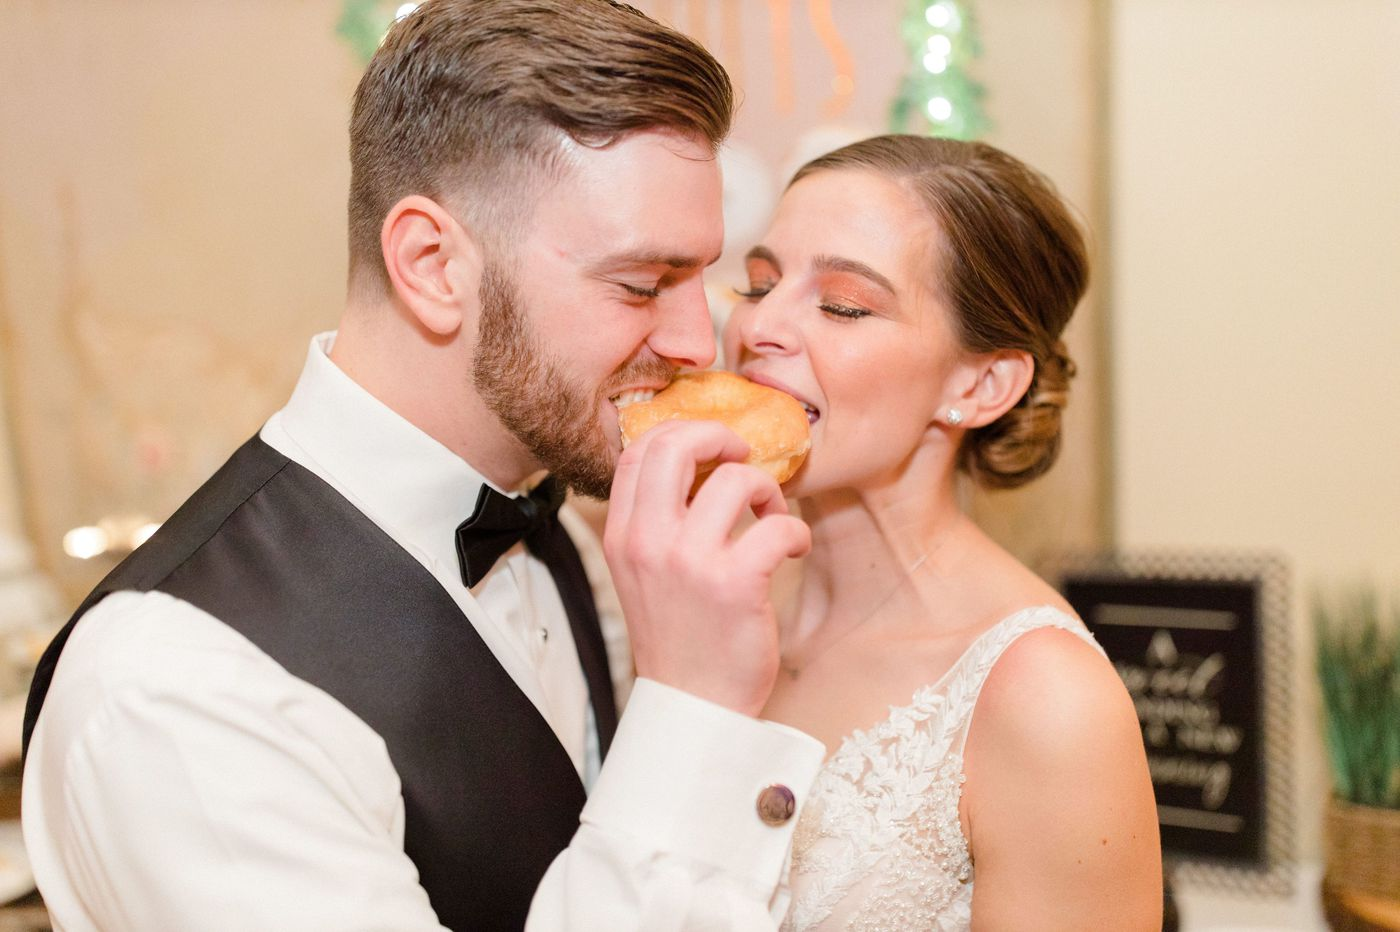 Weddings: Anthony Kulik and Bernadette Costello fell in love during an egg fight